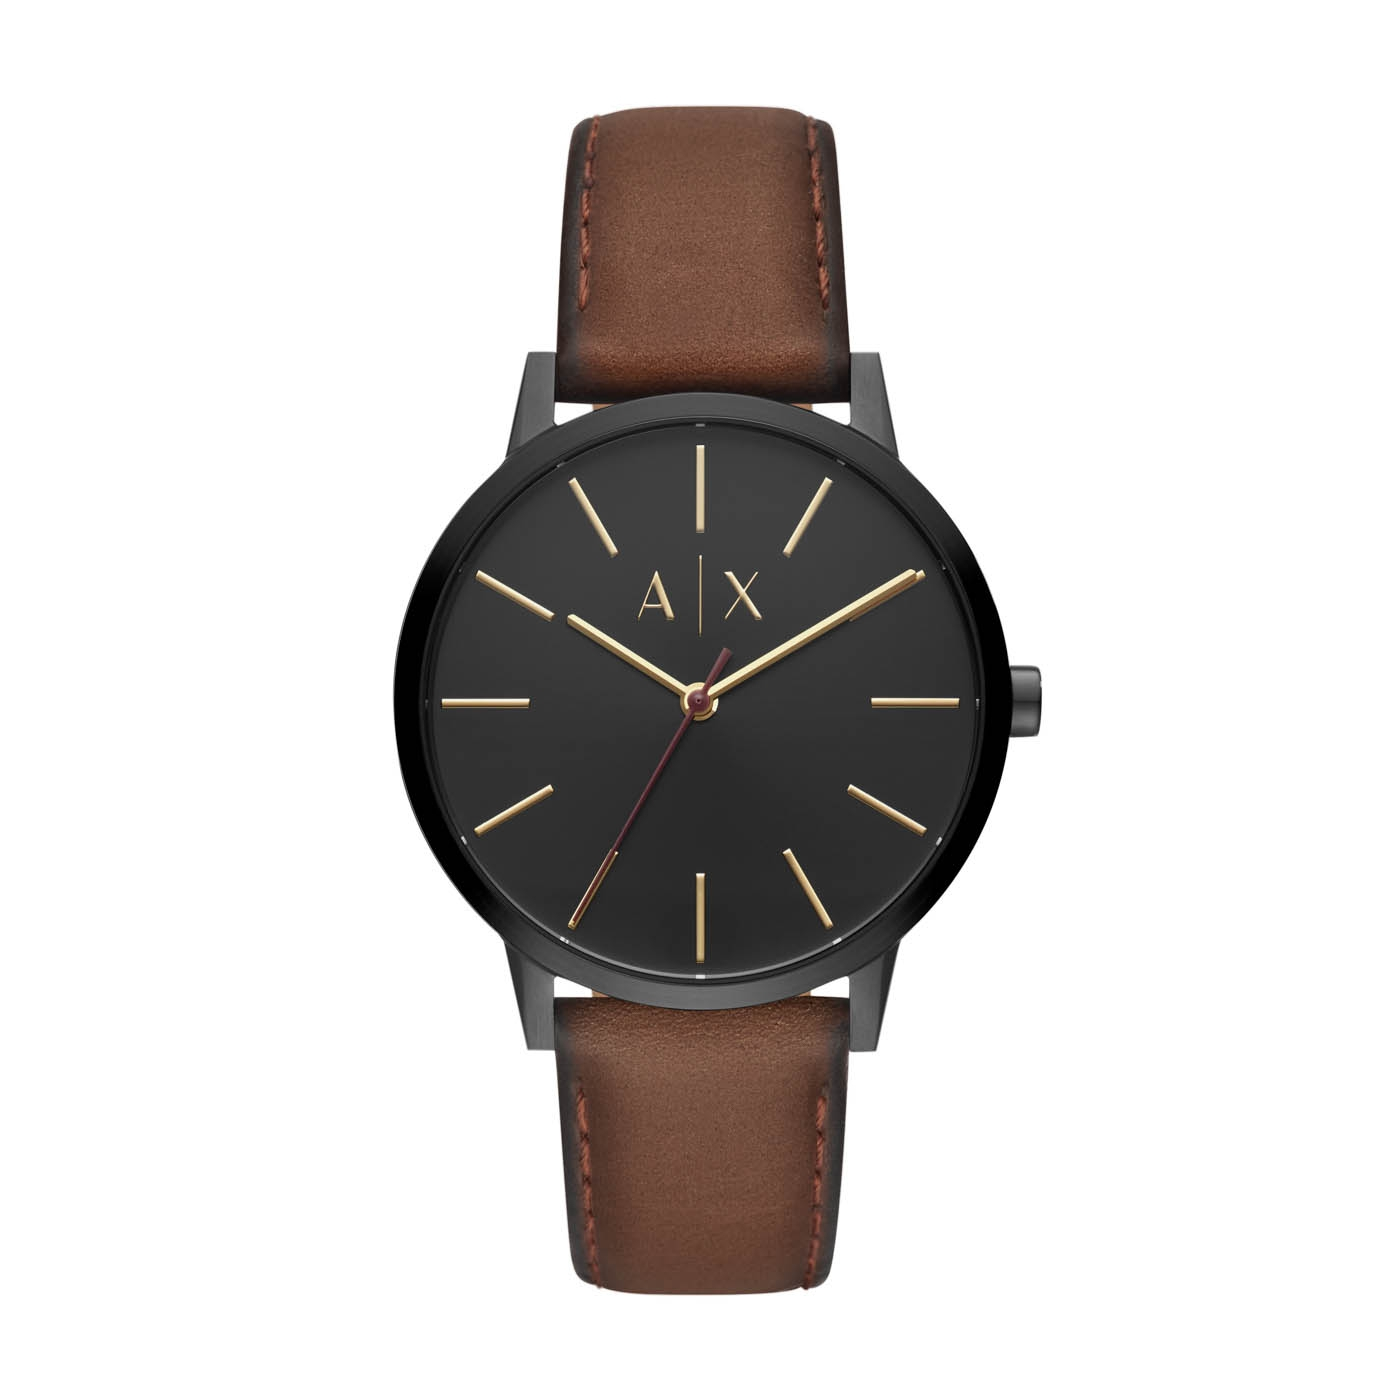 Immagine di Armani Exchange Cayde watch AX2706